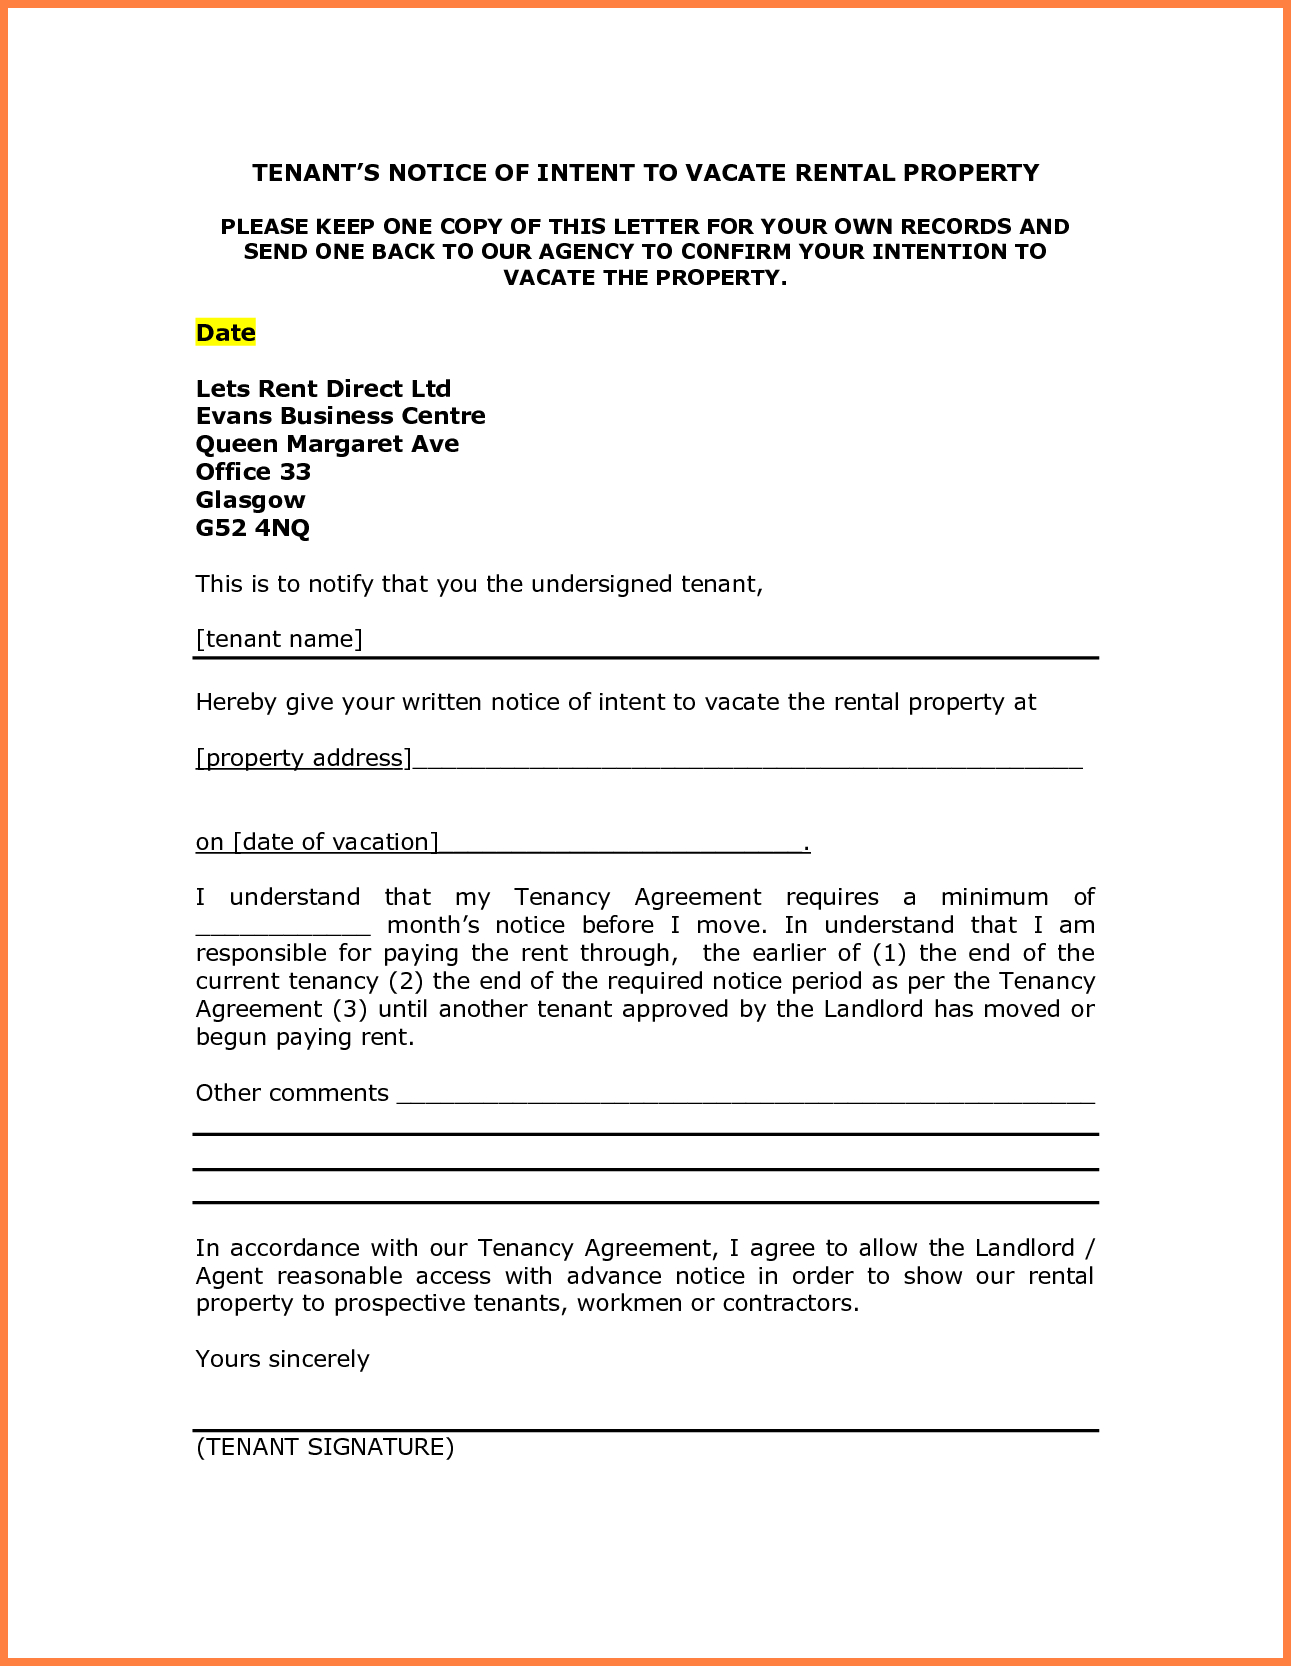 Intent to Vacate Letter Template - Letter Intent to Move Sample Notice Vacate Tenant Rentaloperty